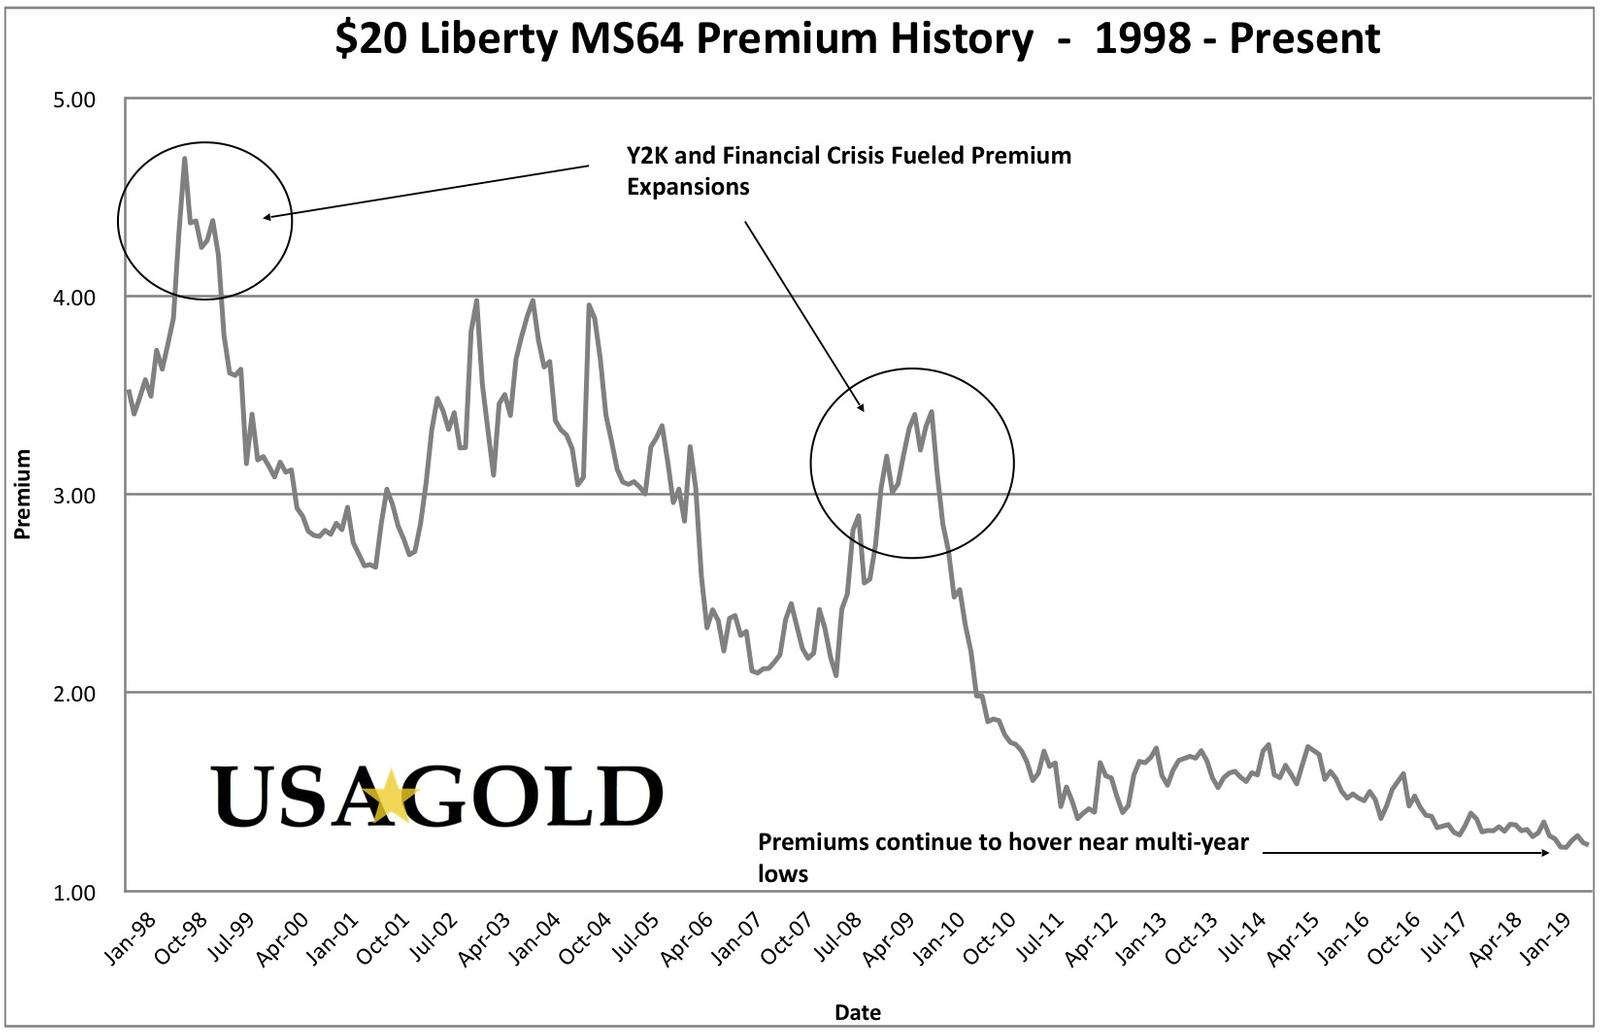 Track the value of MS64 U.S. $20 Liberty gold coins as they compare to the price of gold with this 20 year premium history chart.